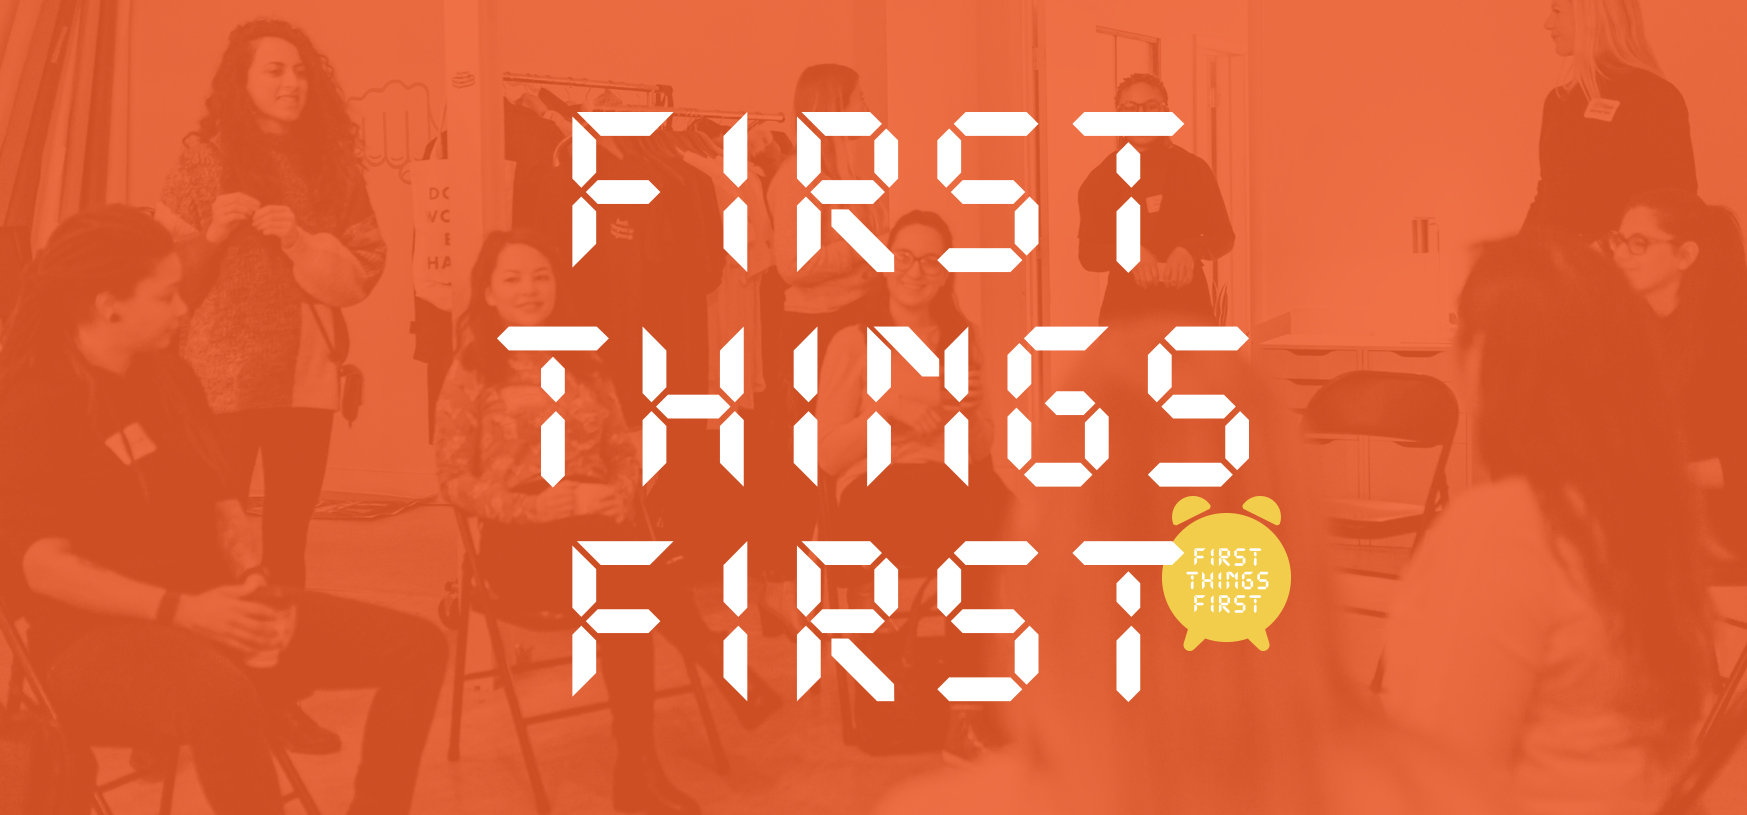 FirstThingsFirst1